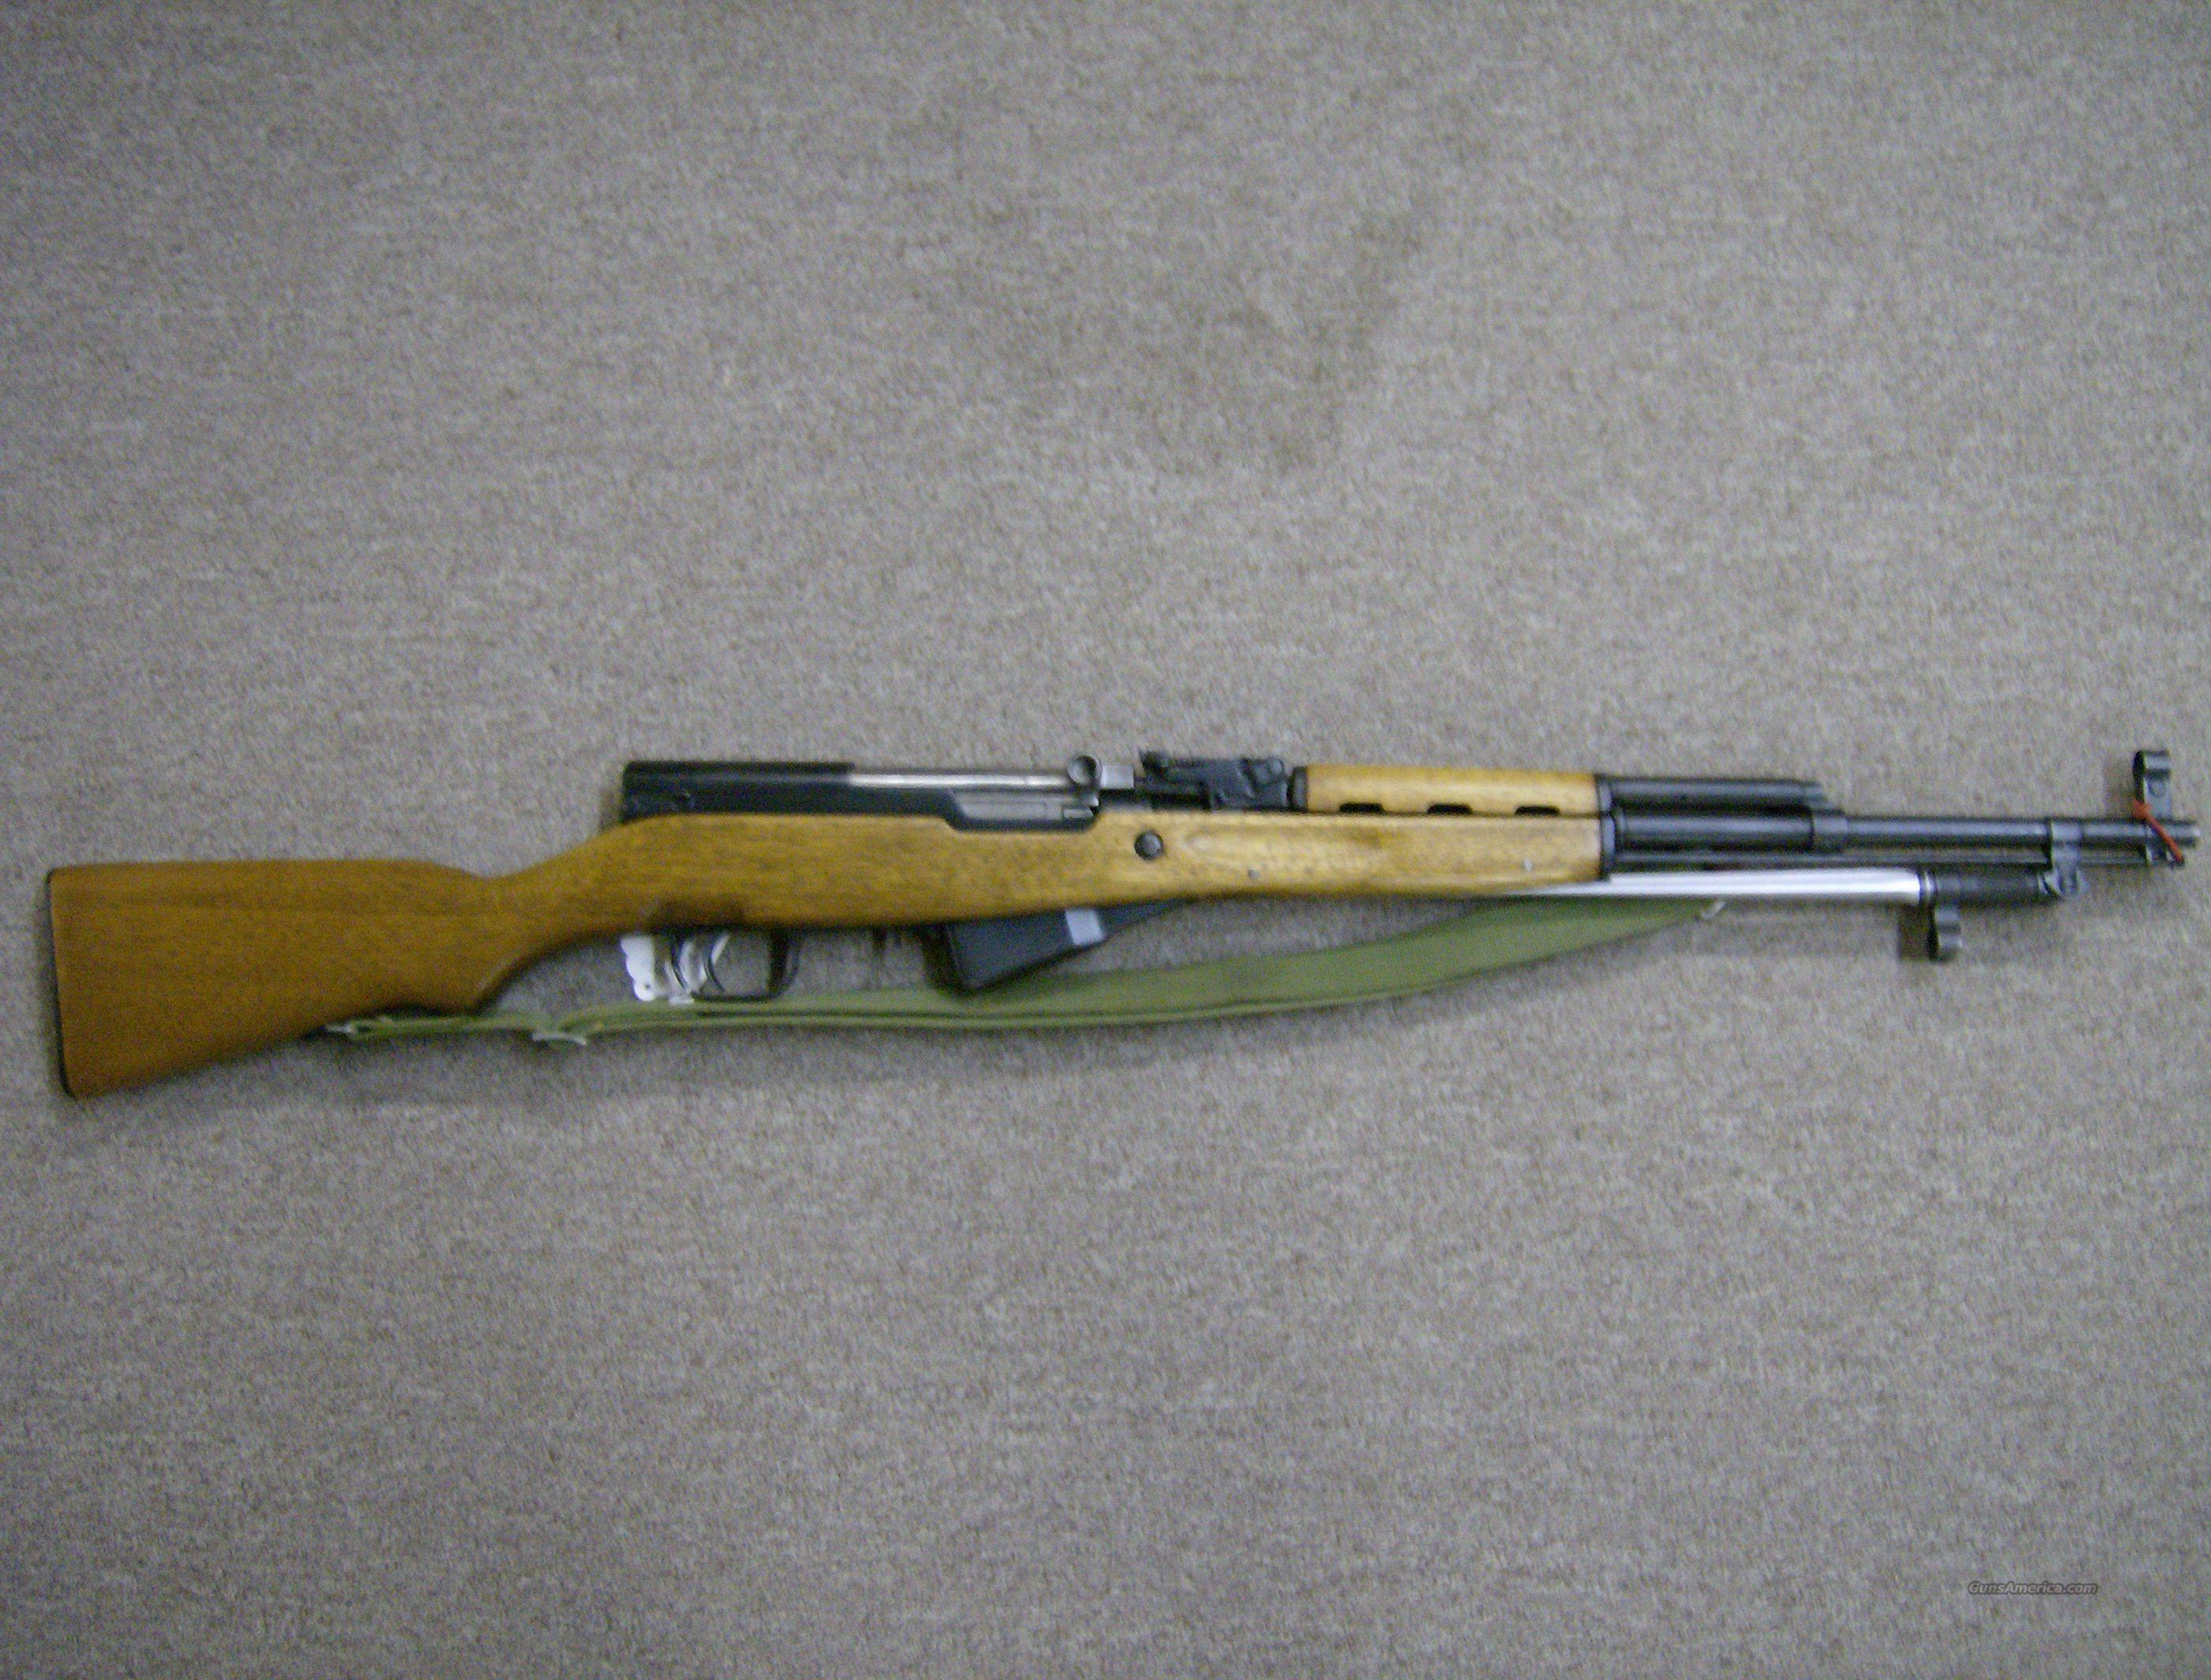 CHINESE SKS 7.62 X 39 RIFLE  Guns > Rifles > SKS Rifles